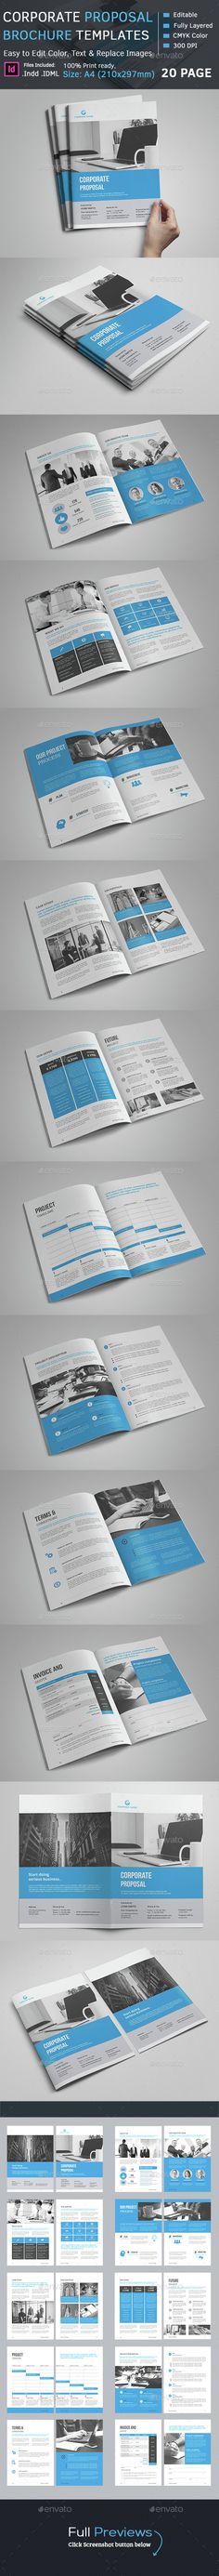 Proposal Template u2014 Photoshop PSD #company proposal #corporate - it services proposal template